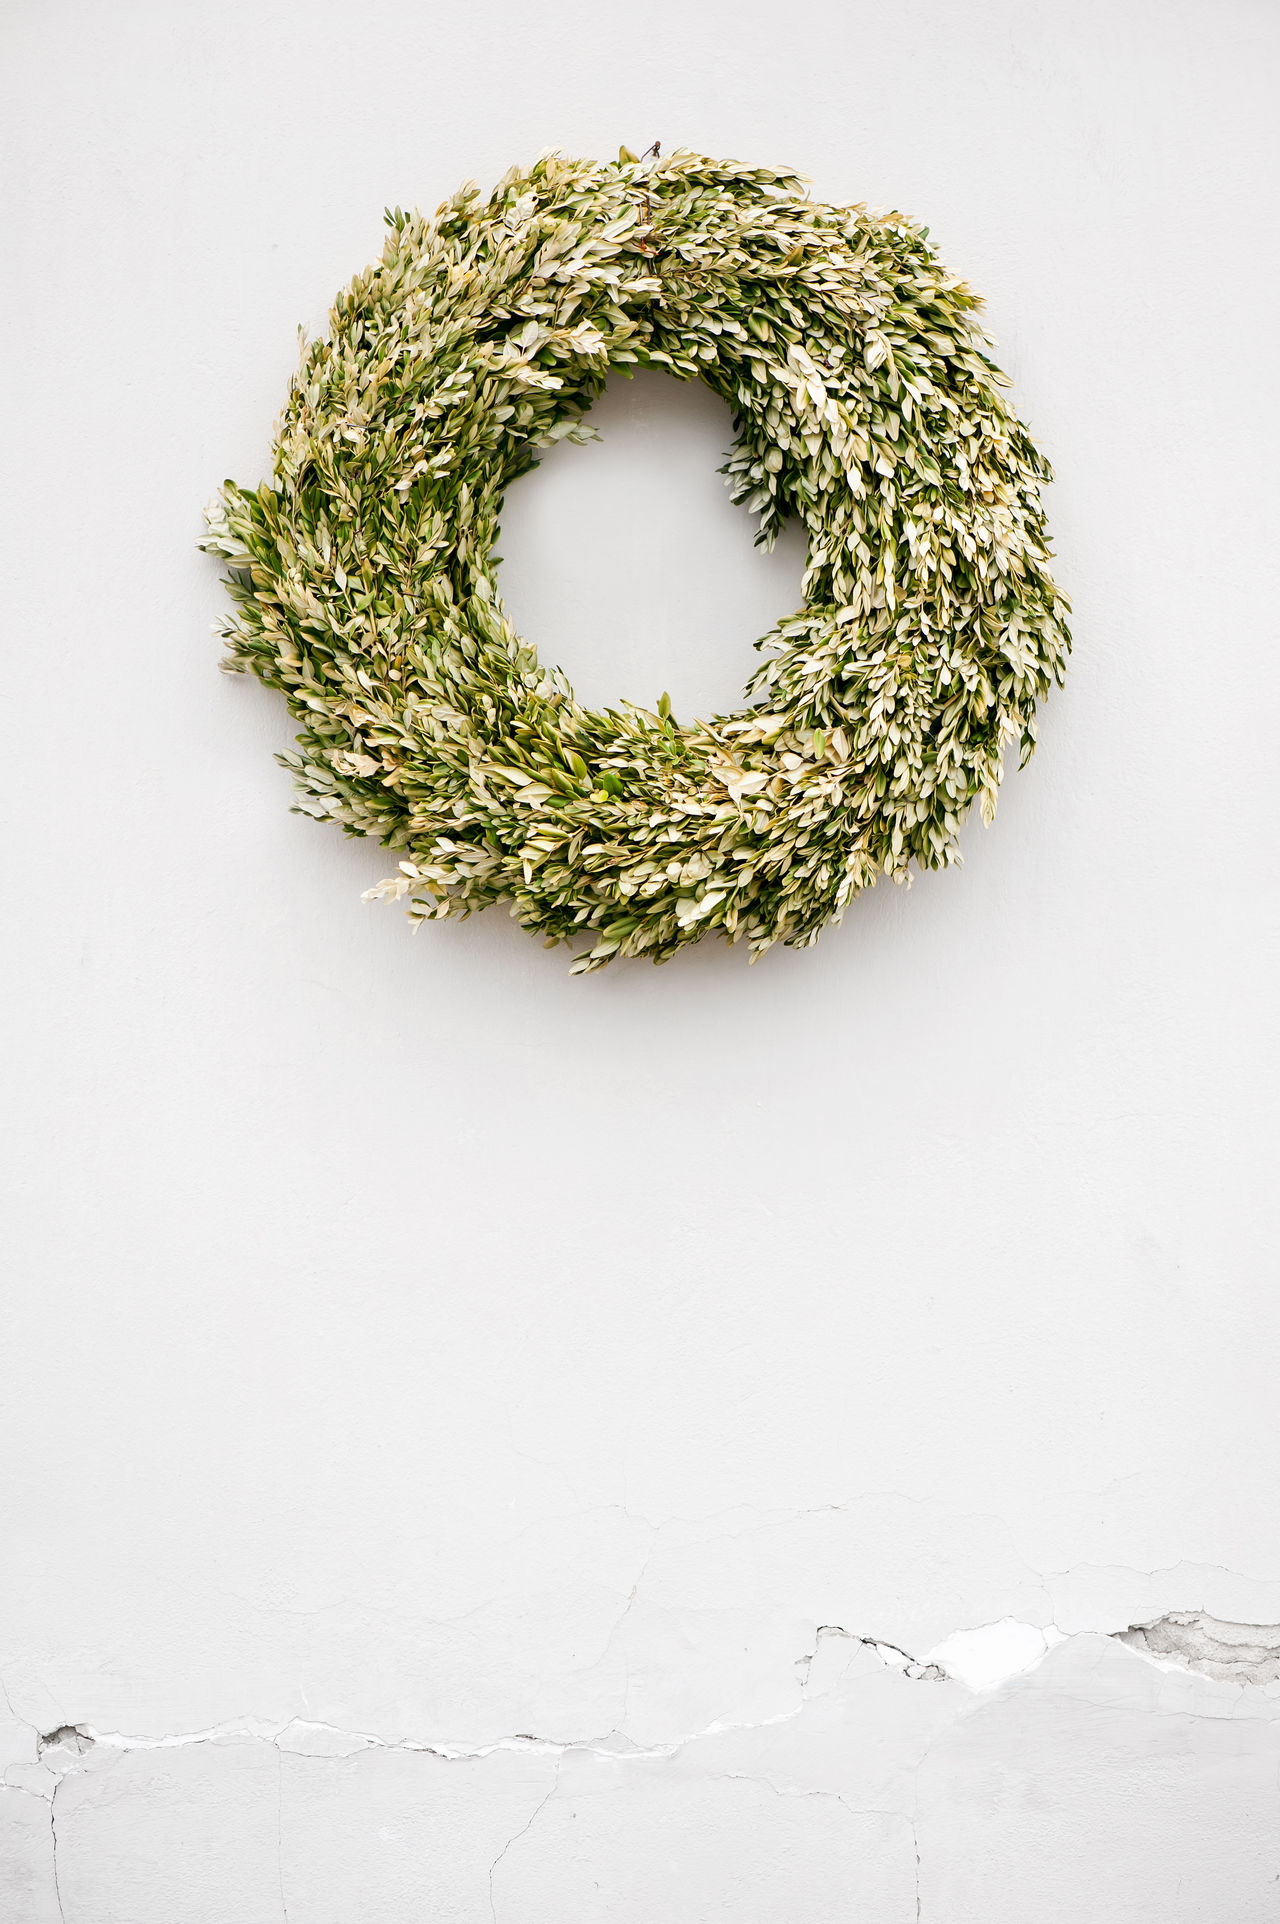 Dried Buxus wreath on white wall minimalism abstract in vertical orientation, nobody. Green wilted plant ring hanging as christmas decoration. Box Boxwood Buxus Christmas Christmas Decorations Decoration Dried Green Hang Minimalism Plant Poor  Ring Wall Weak White Wilted Wreath Xmas Xmas Decorations